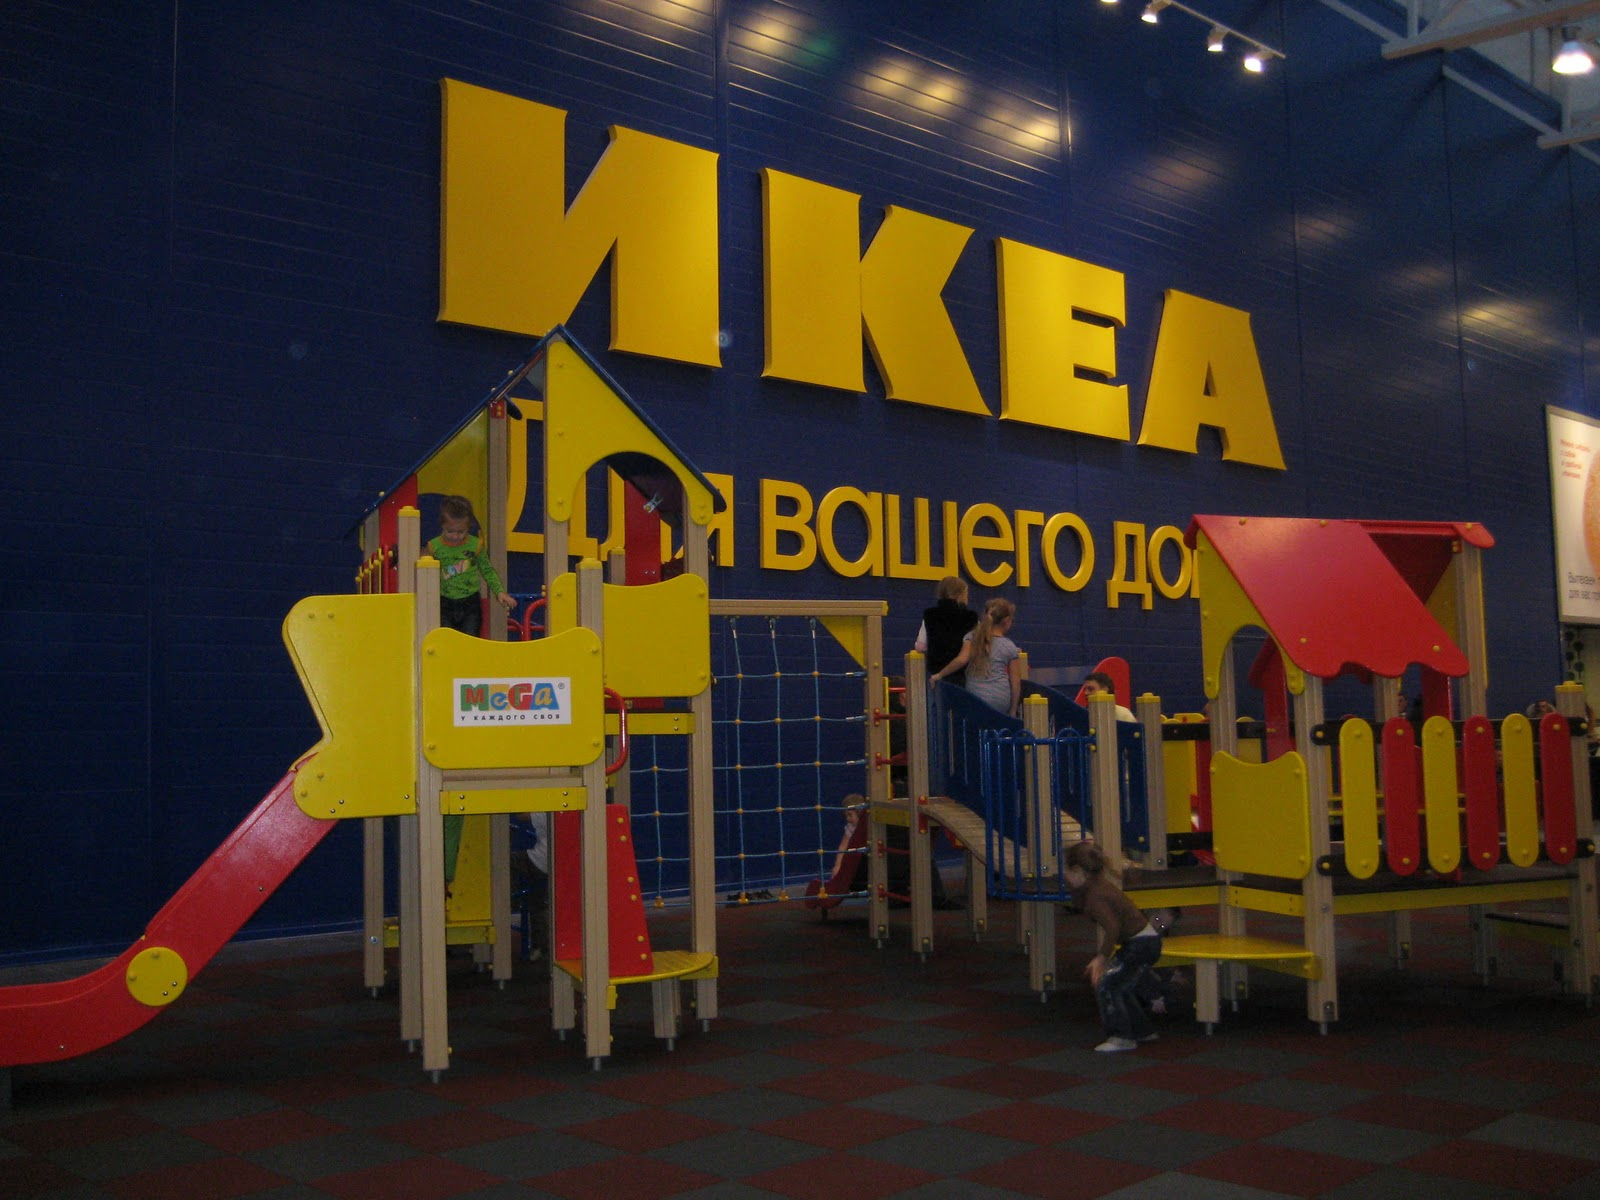 Ikea Play Area